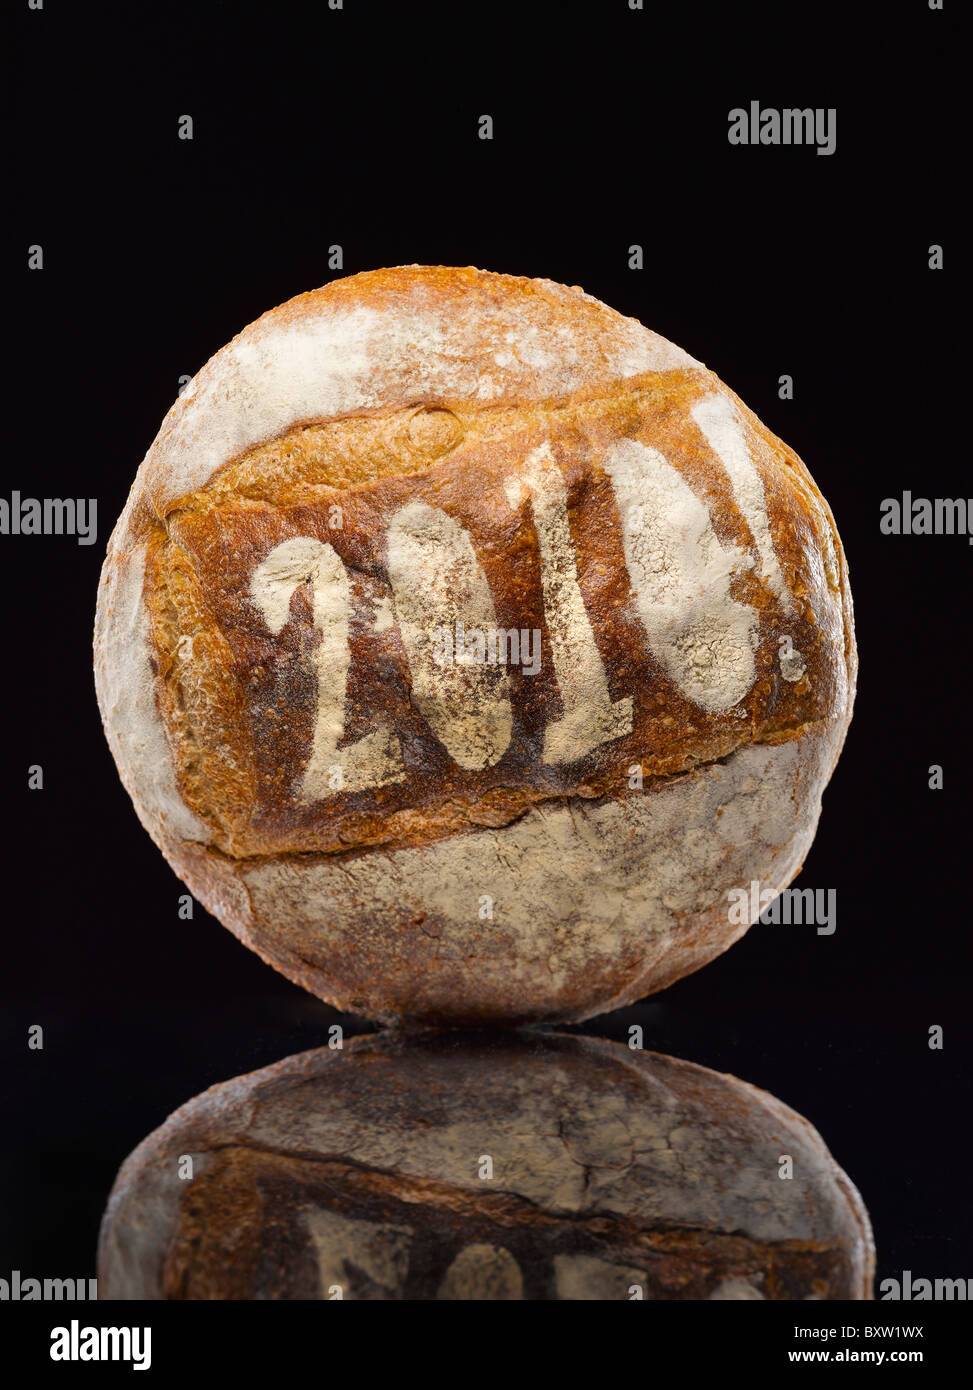 round loaf of bread dusted with the year date - Stock Image